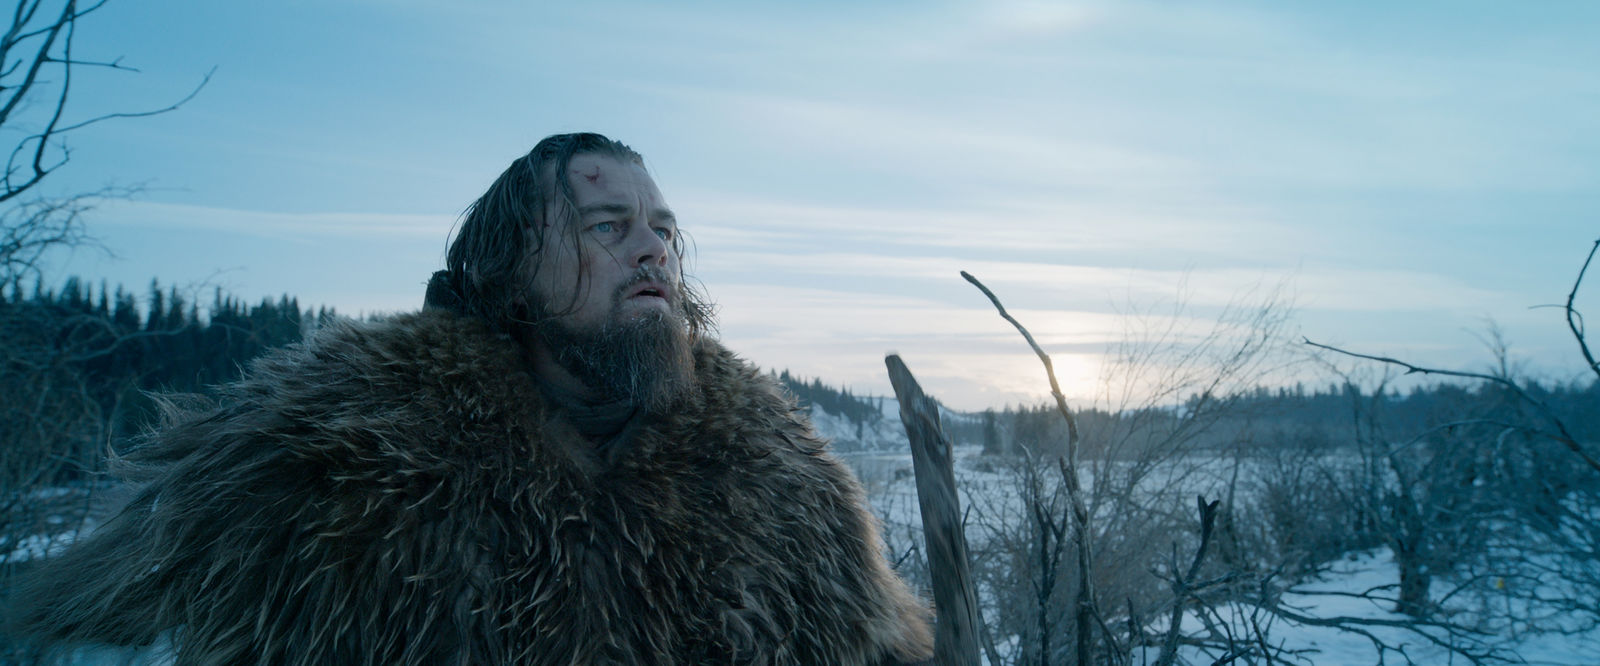 "This photo provided by courtesy of  Twentieth Century Fox shows, Leonardo DiCaprio as Hugh Glass, in a scene from the film, ""The Revenant,"" directed by Alejandro Gonzalez Inarritu. (Courtesy Twentieth Century Fox via AP)"